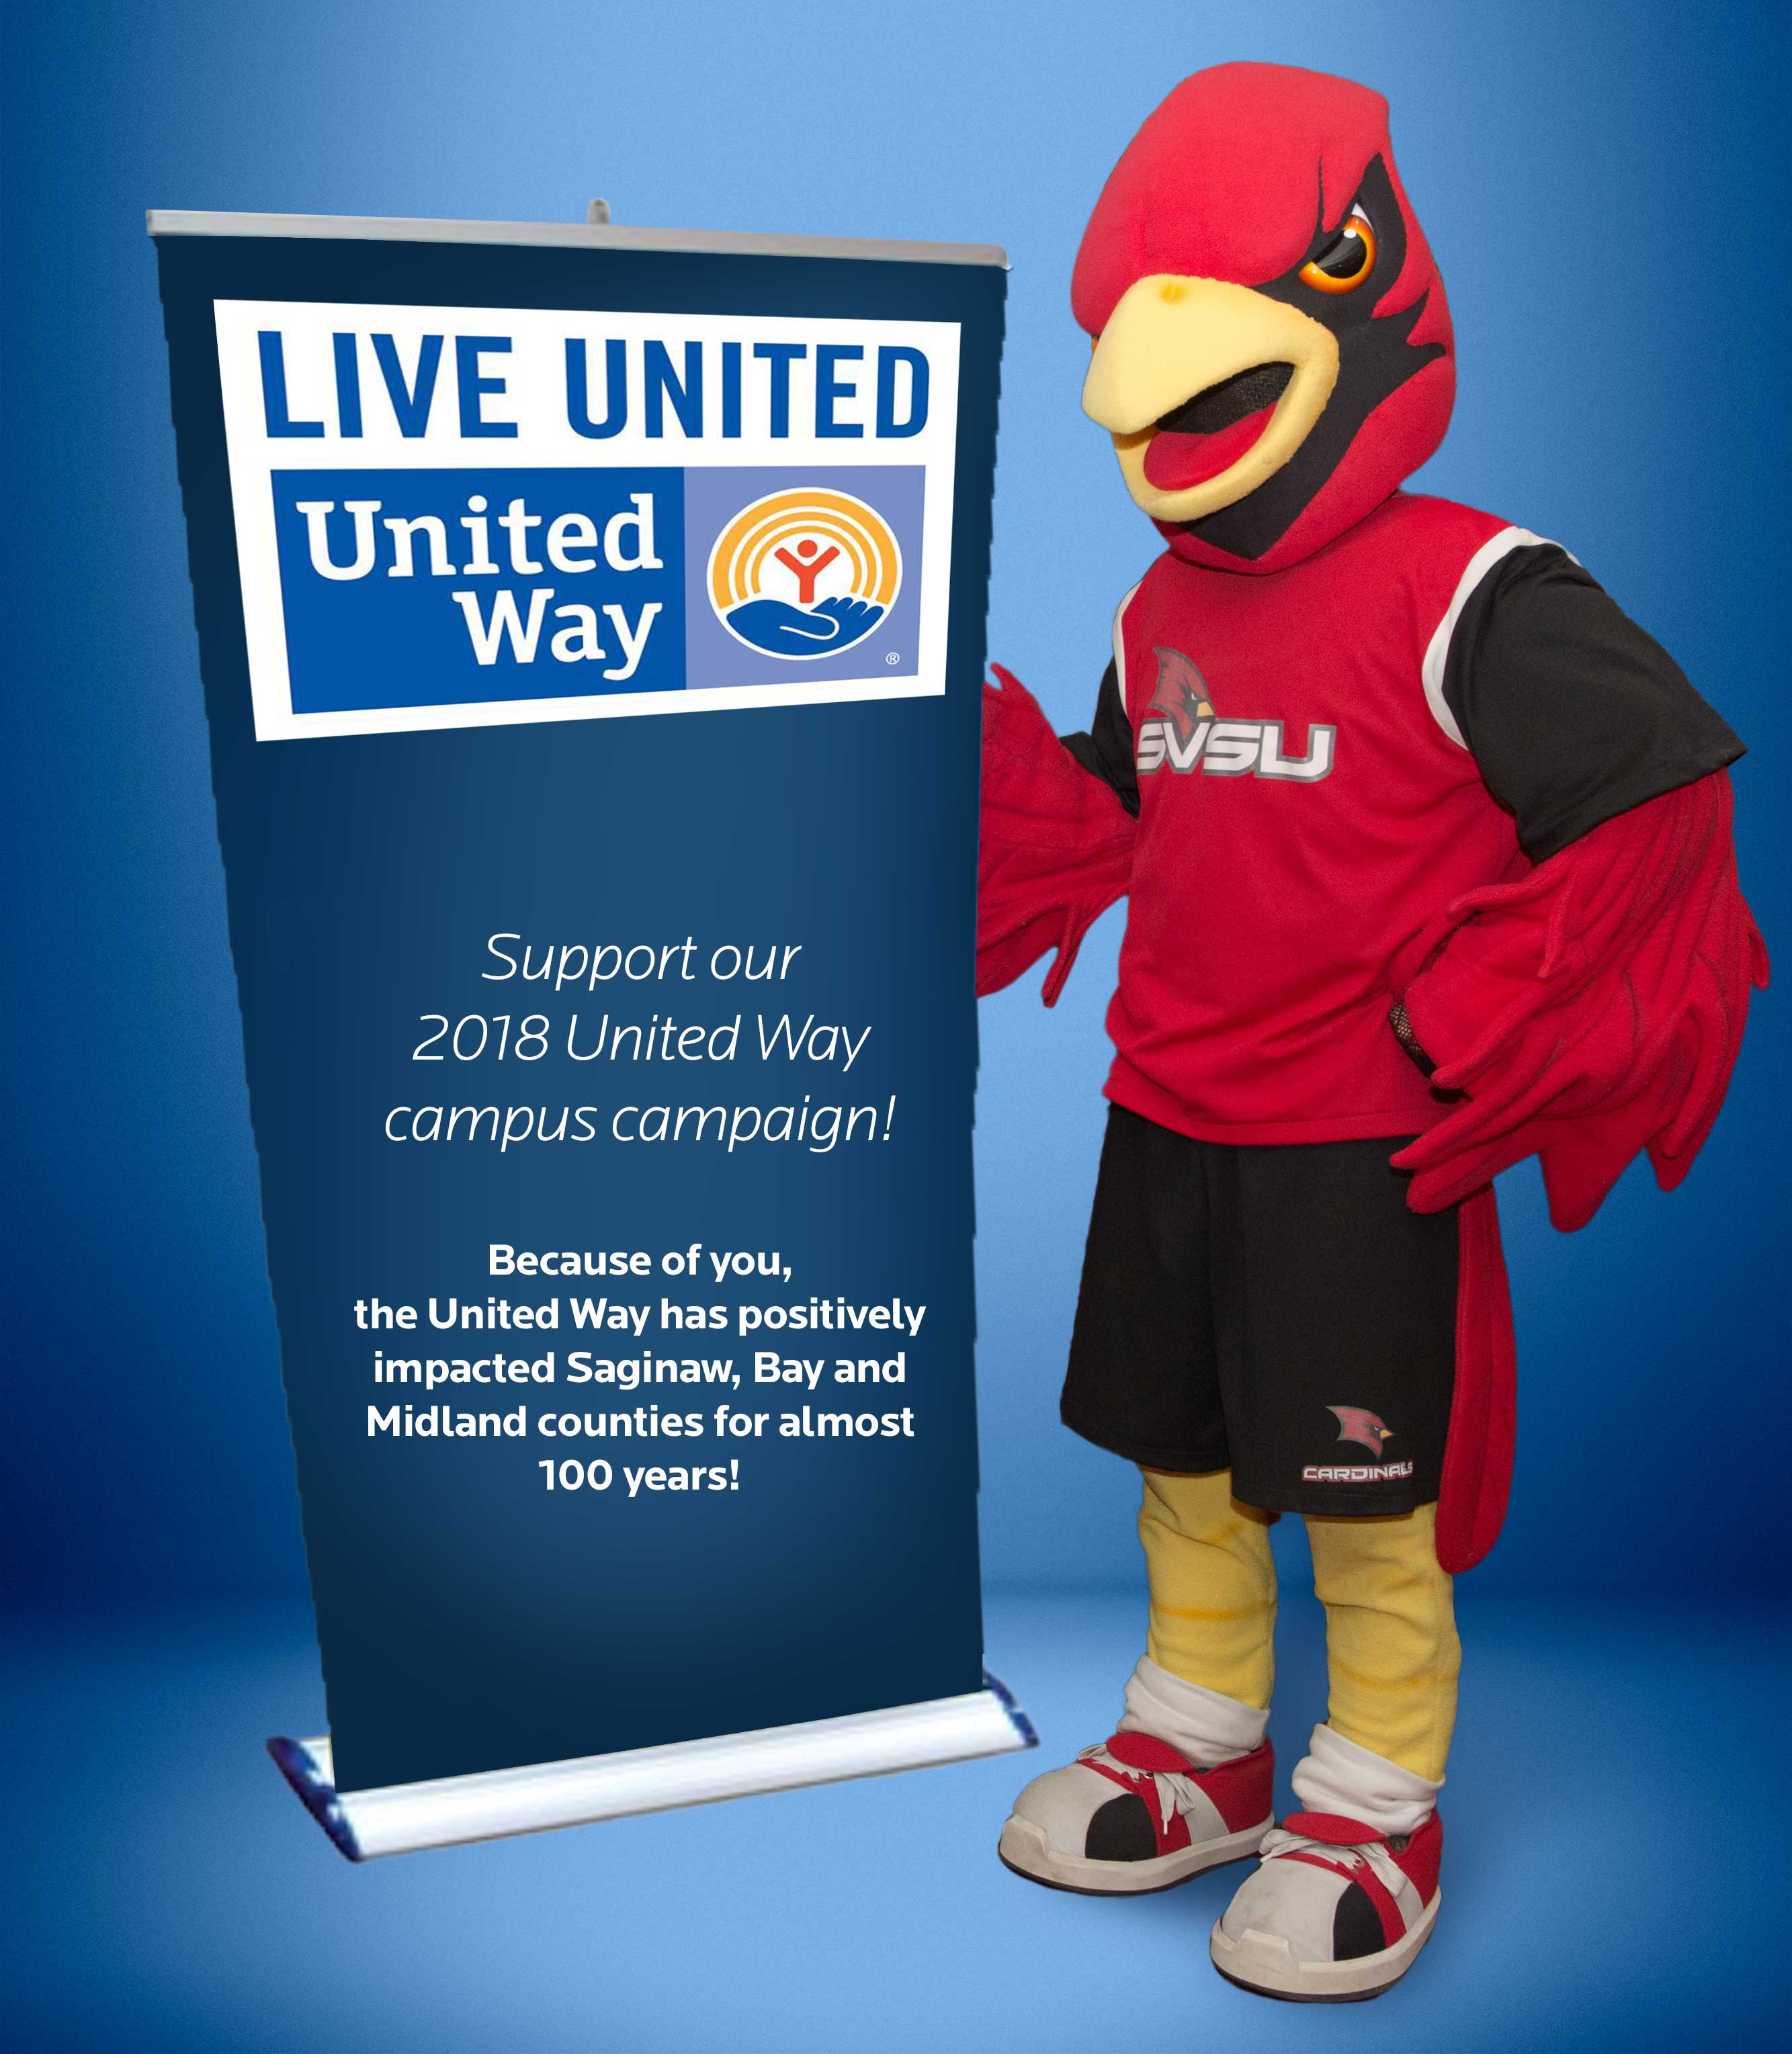 Coop standing next to a banner with United Way logo, support our 2018 United Way campaign.